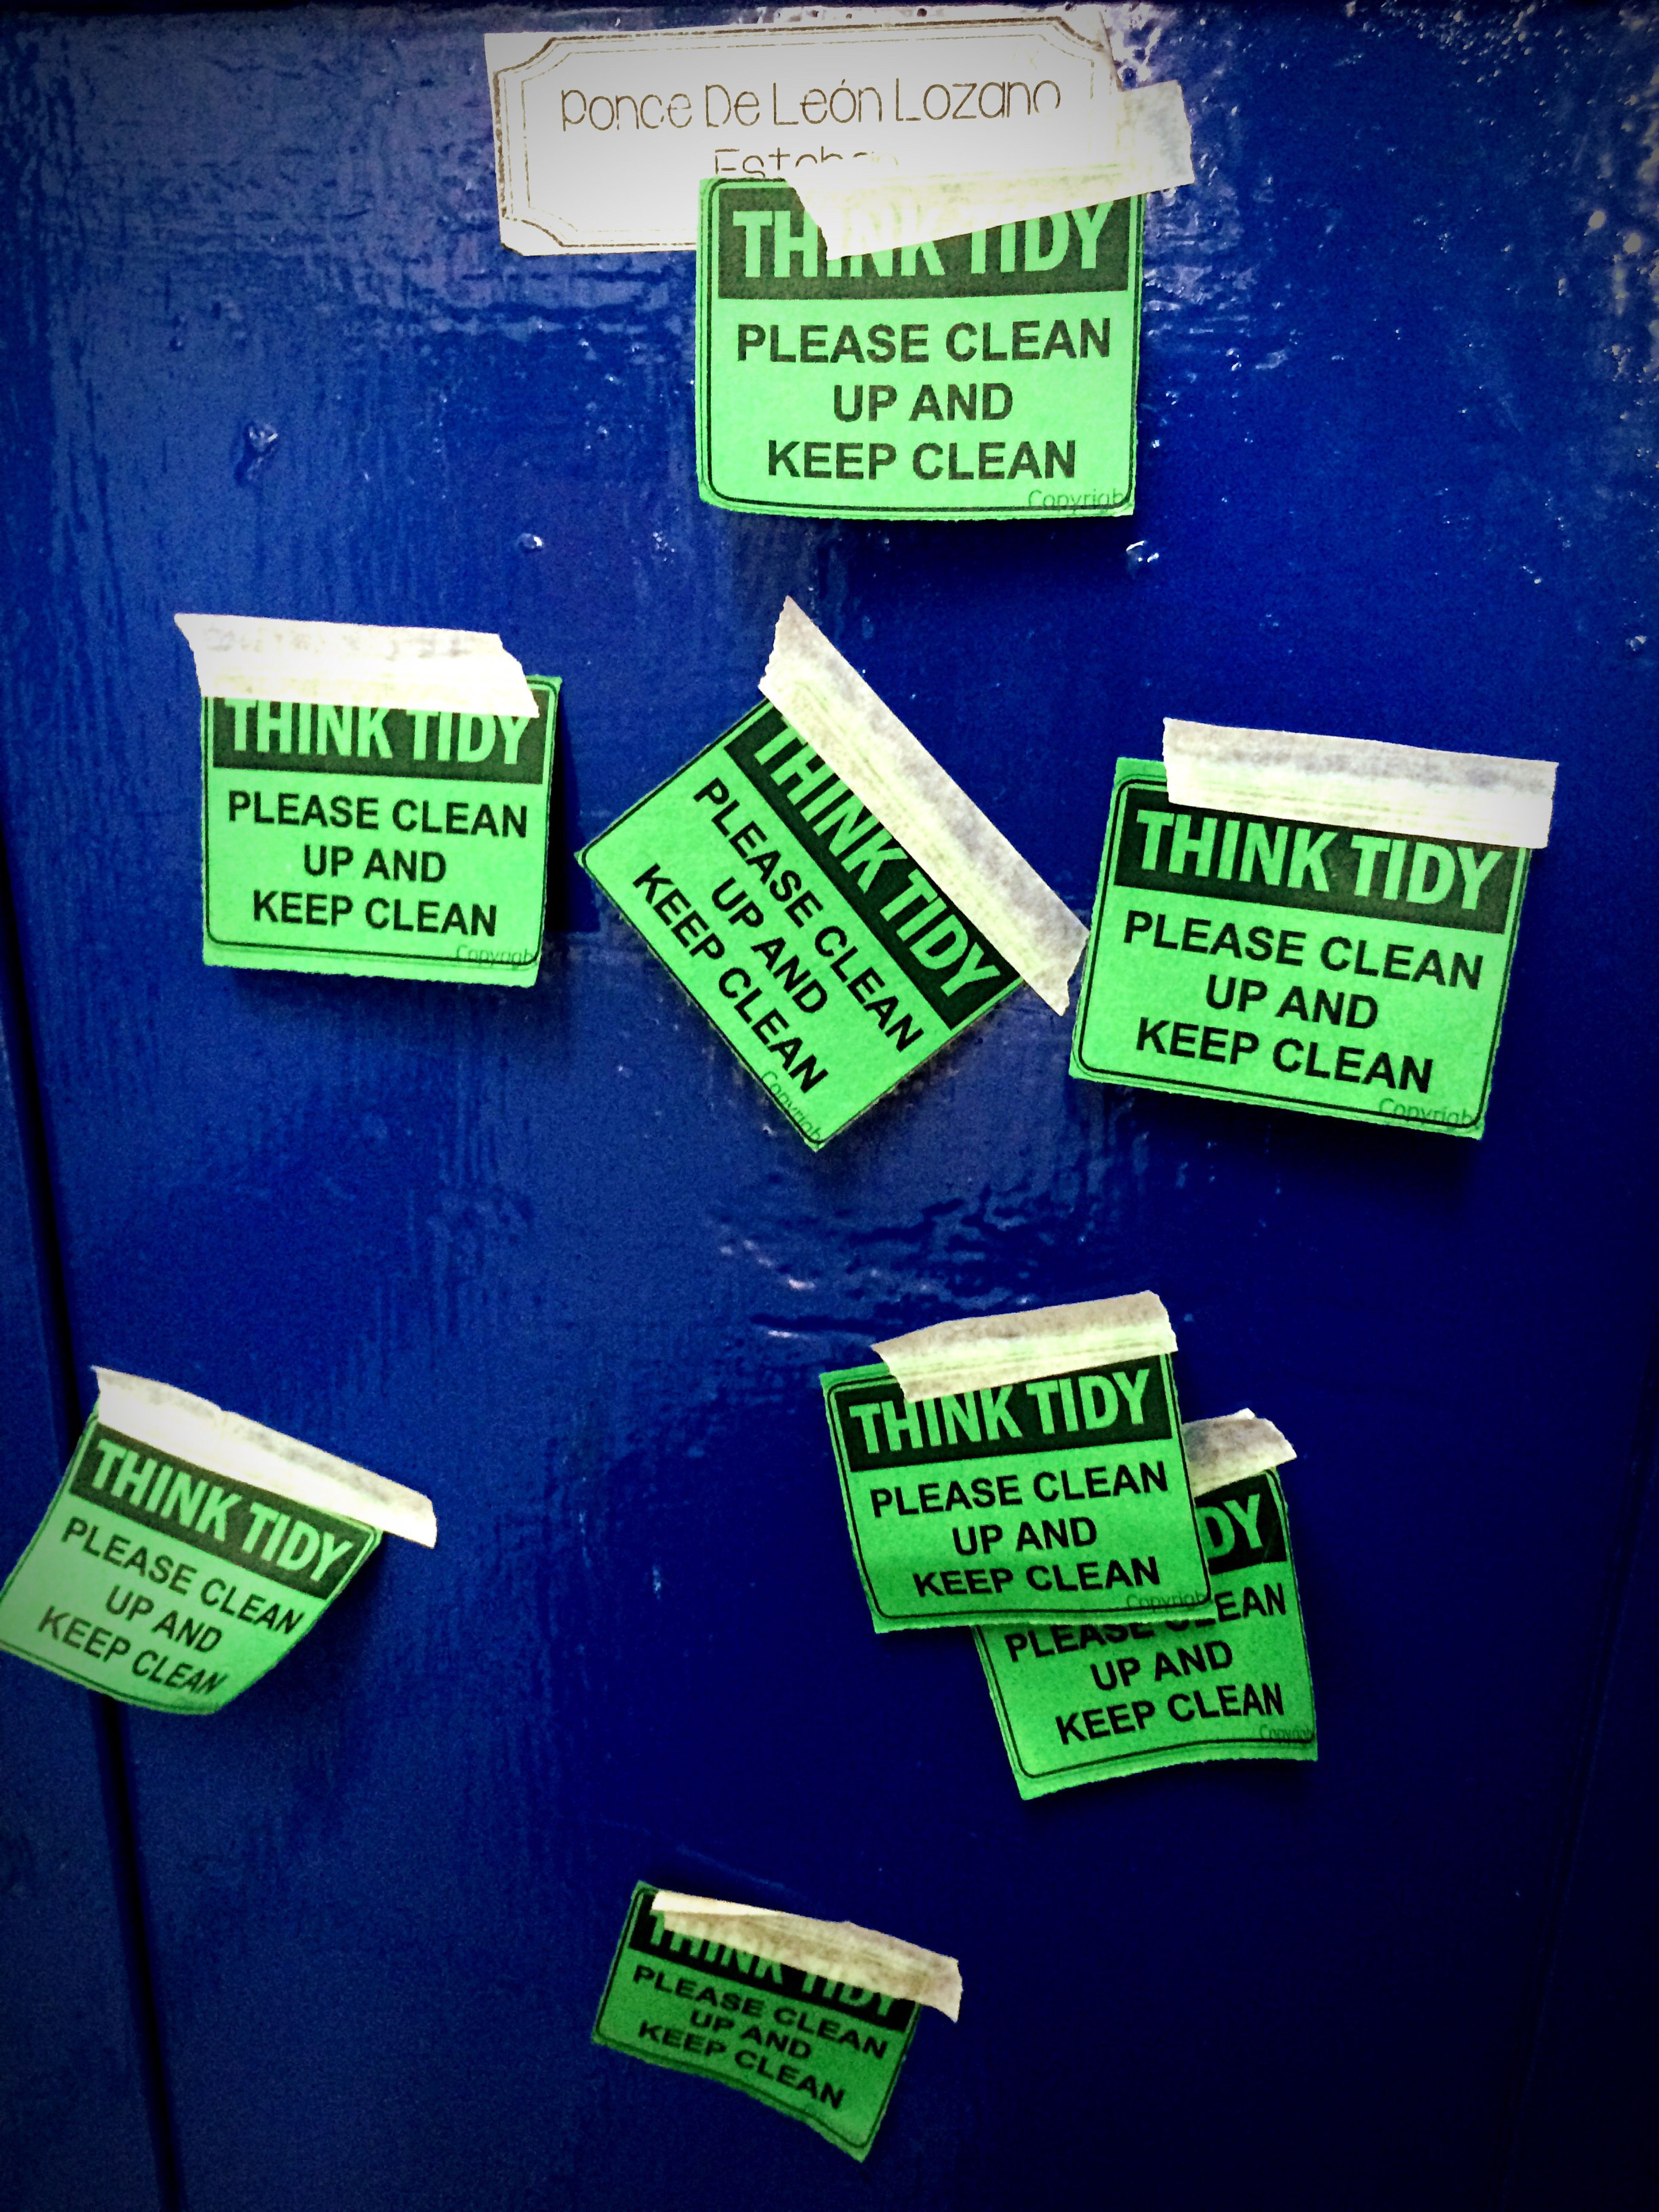 Clean Up Your Locker The Papers Didn't Work